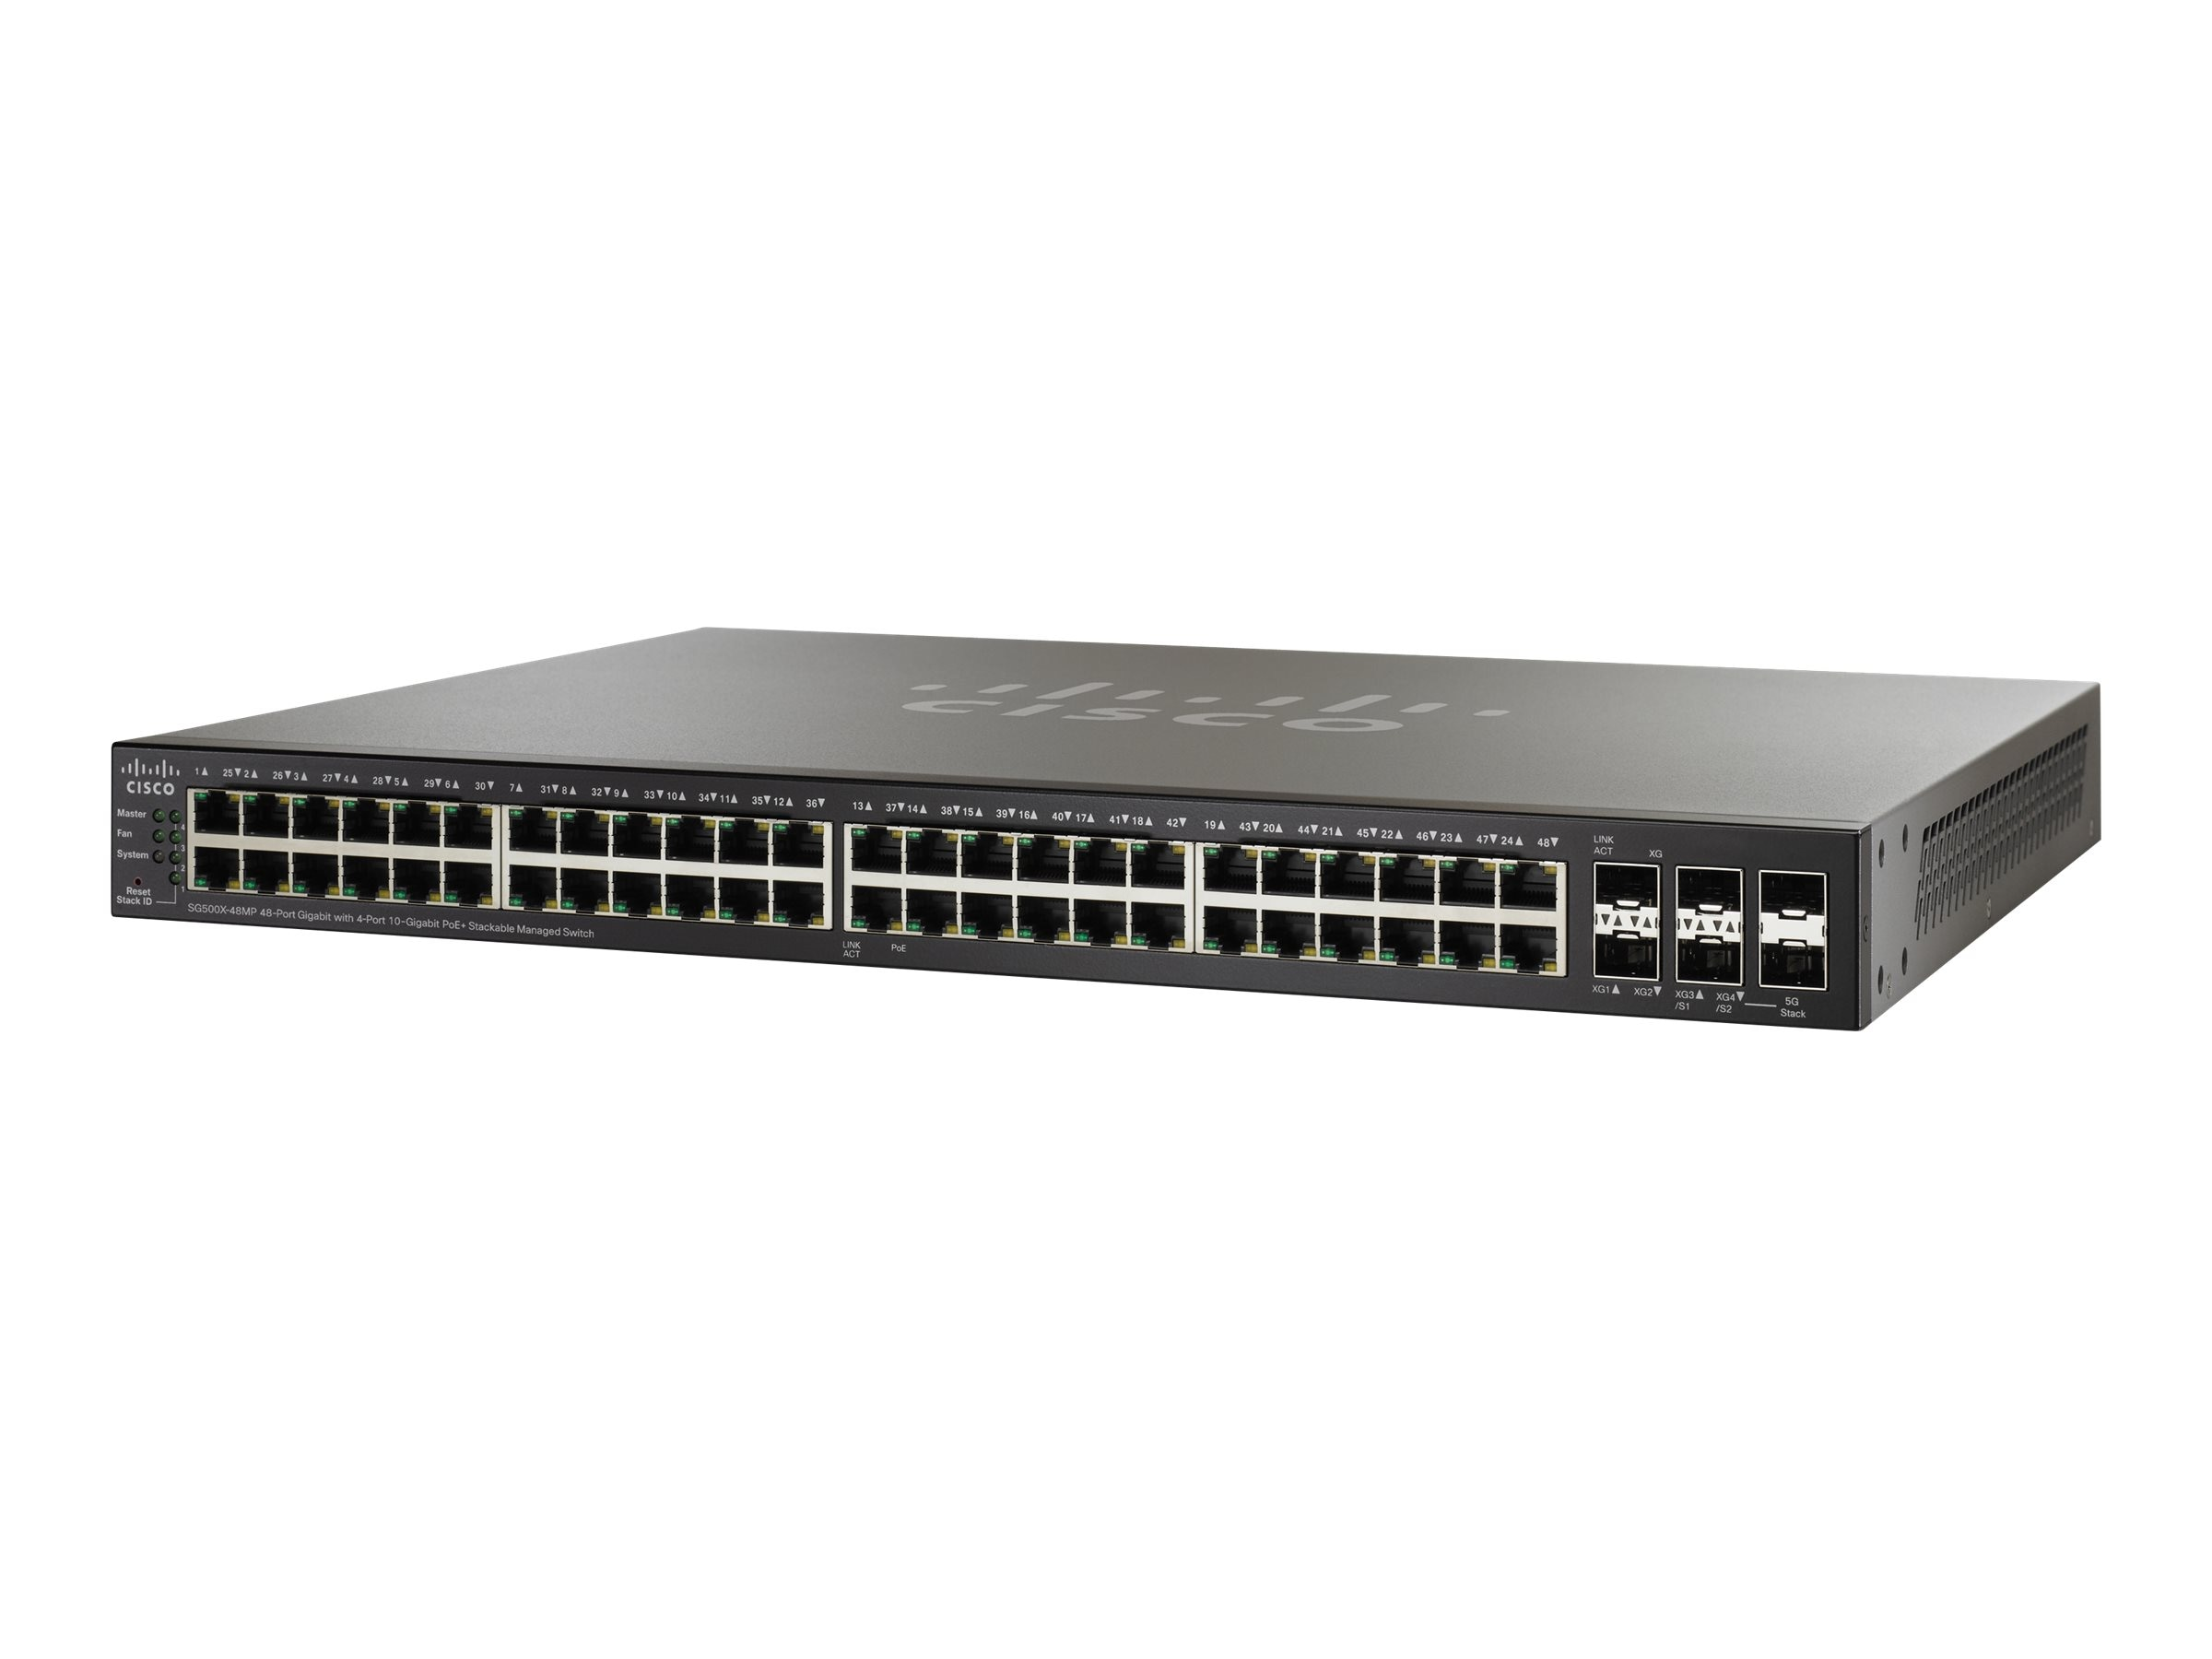 Cisco SG500X-48MPP 48-port Gigabit Switch + 4x10GE MAX POE, SG500X-48MP-K9-NA